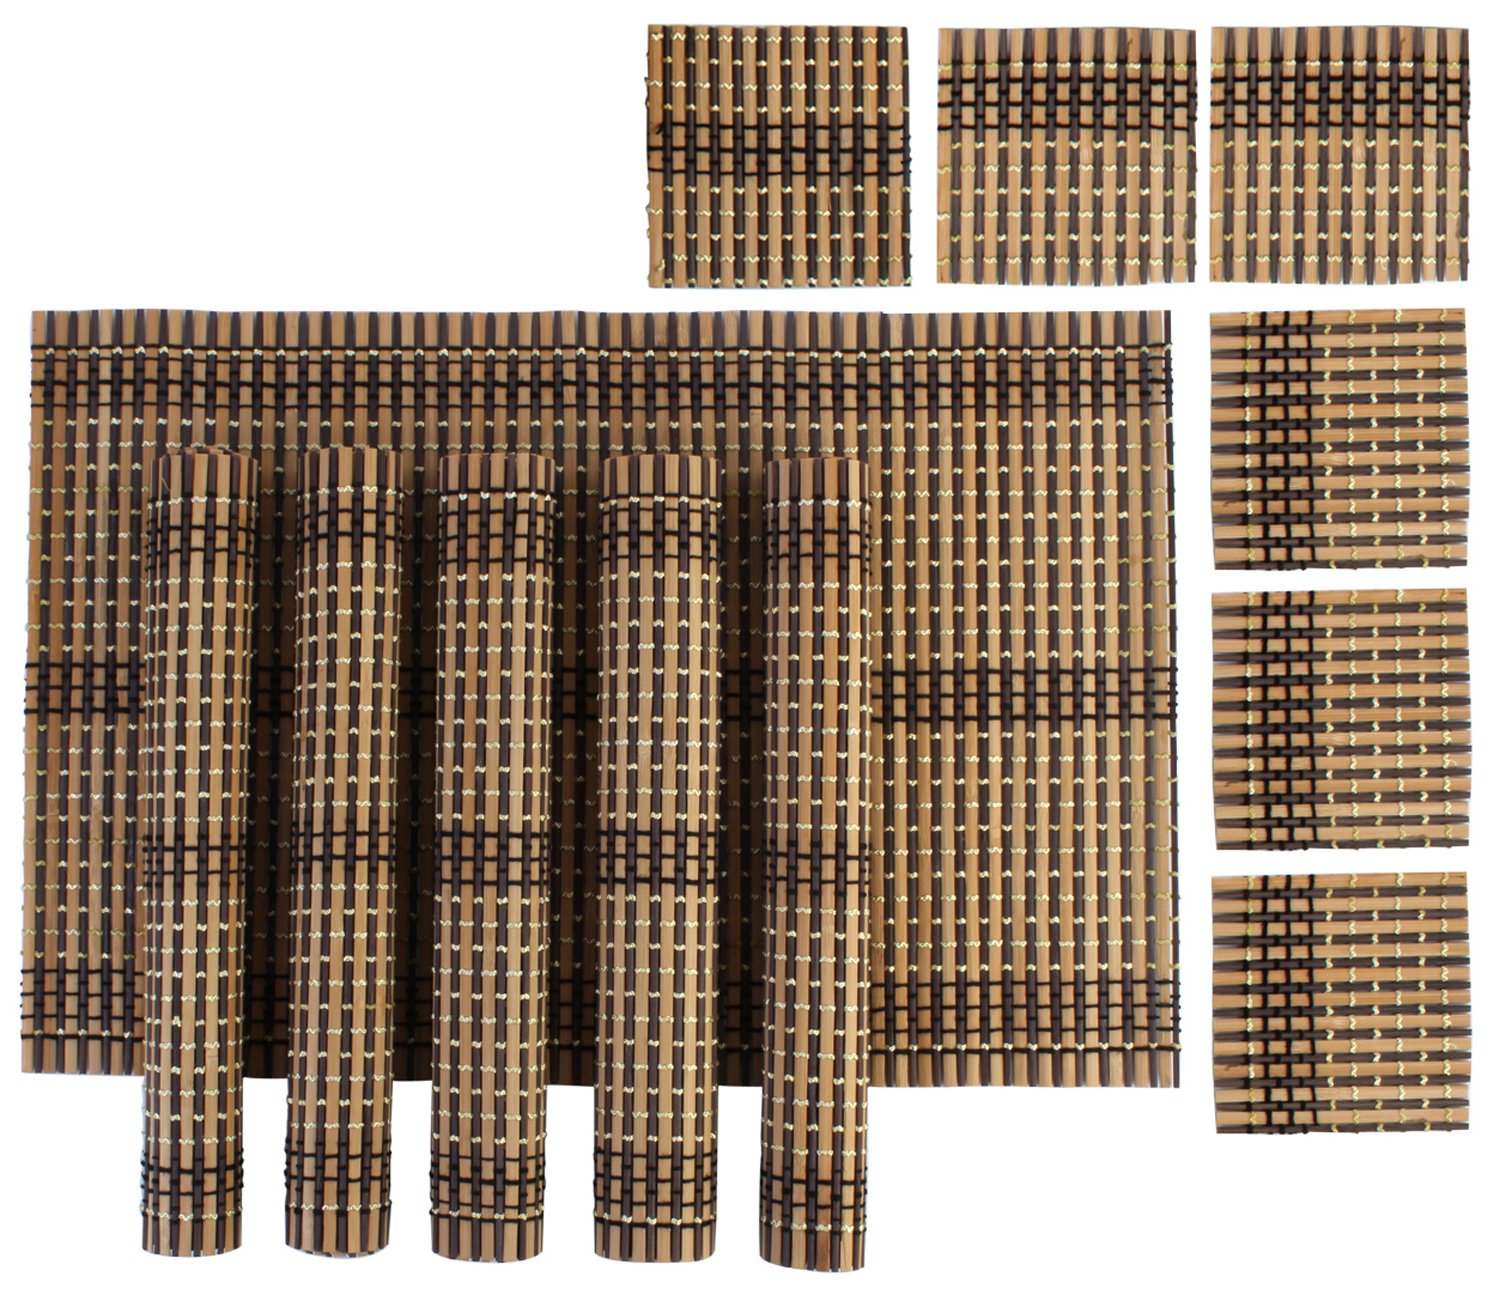 Bamboo Dinner Table Kitchen Placemats U0026 Tea Coasters Set, 6 Pieces Each:  Amazon.in: Home U0026 Kitchen